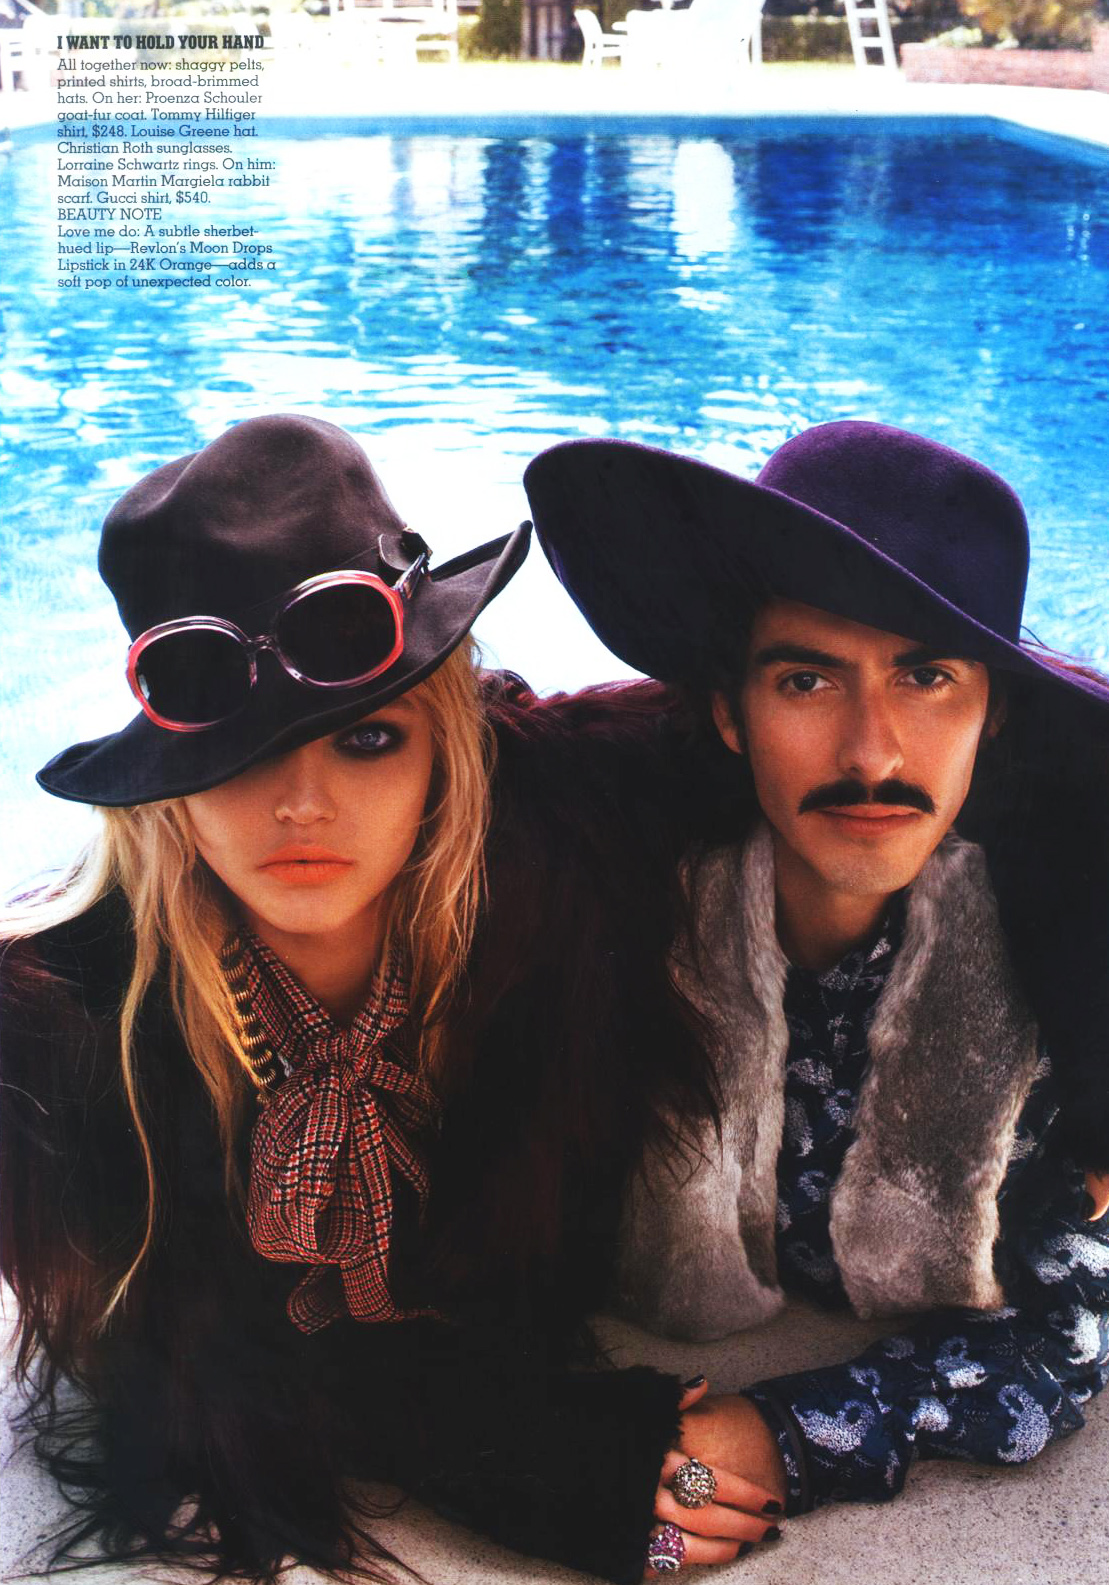 Here Comes The Son: Meet Dhani Harrison